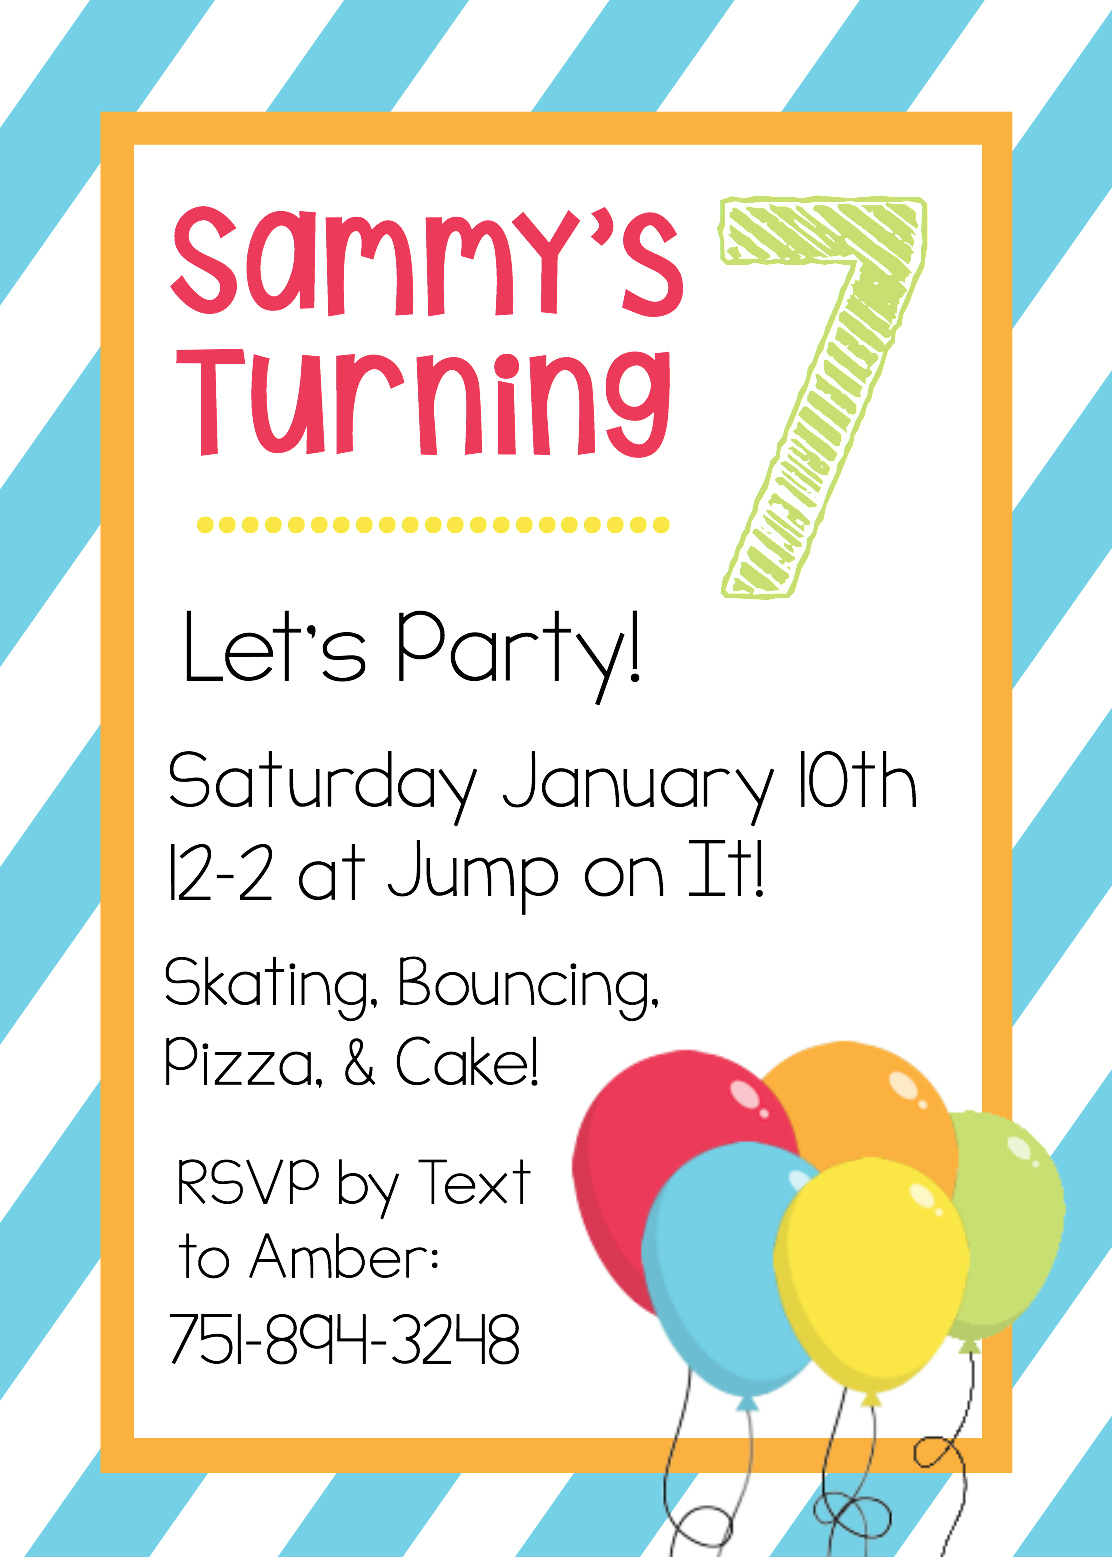 free printable birthday invitation templates - Free Printable Invitation Templates